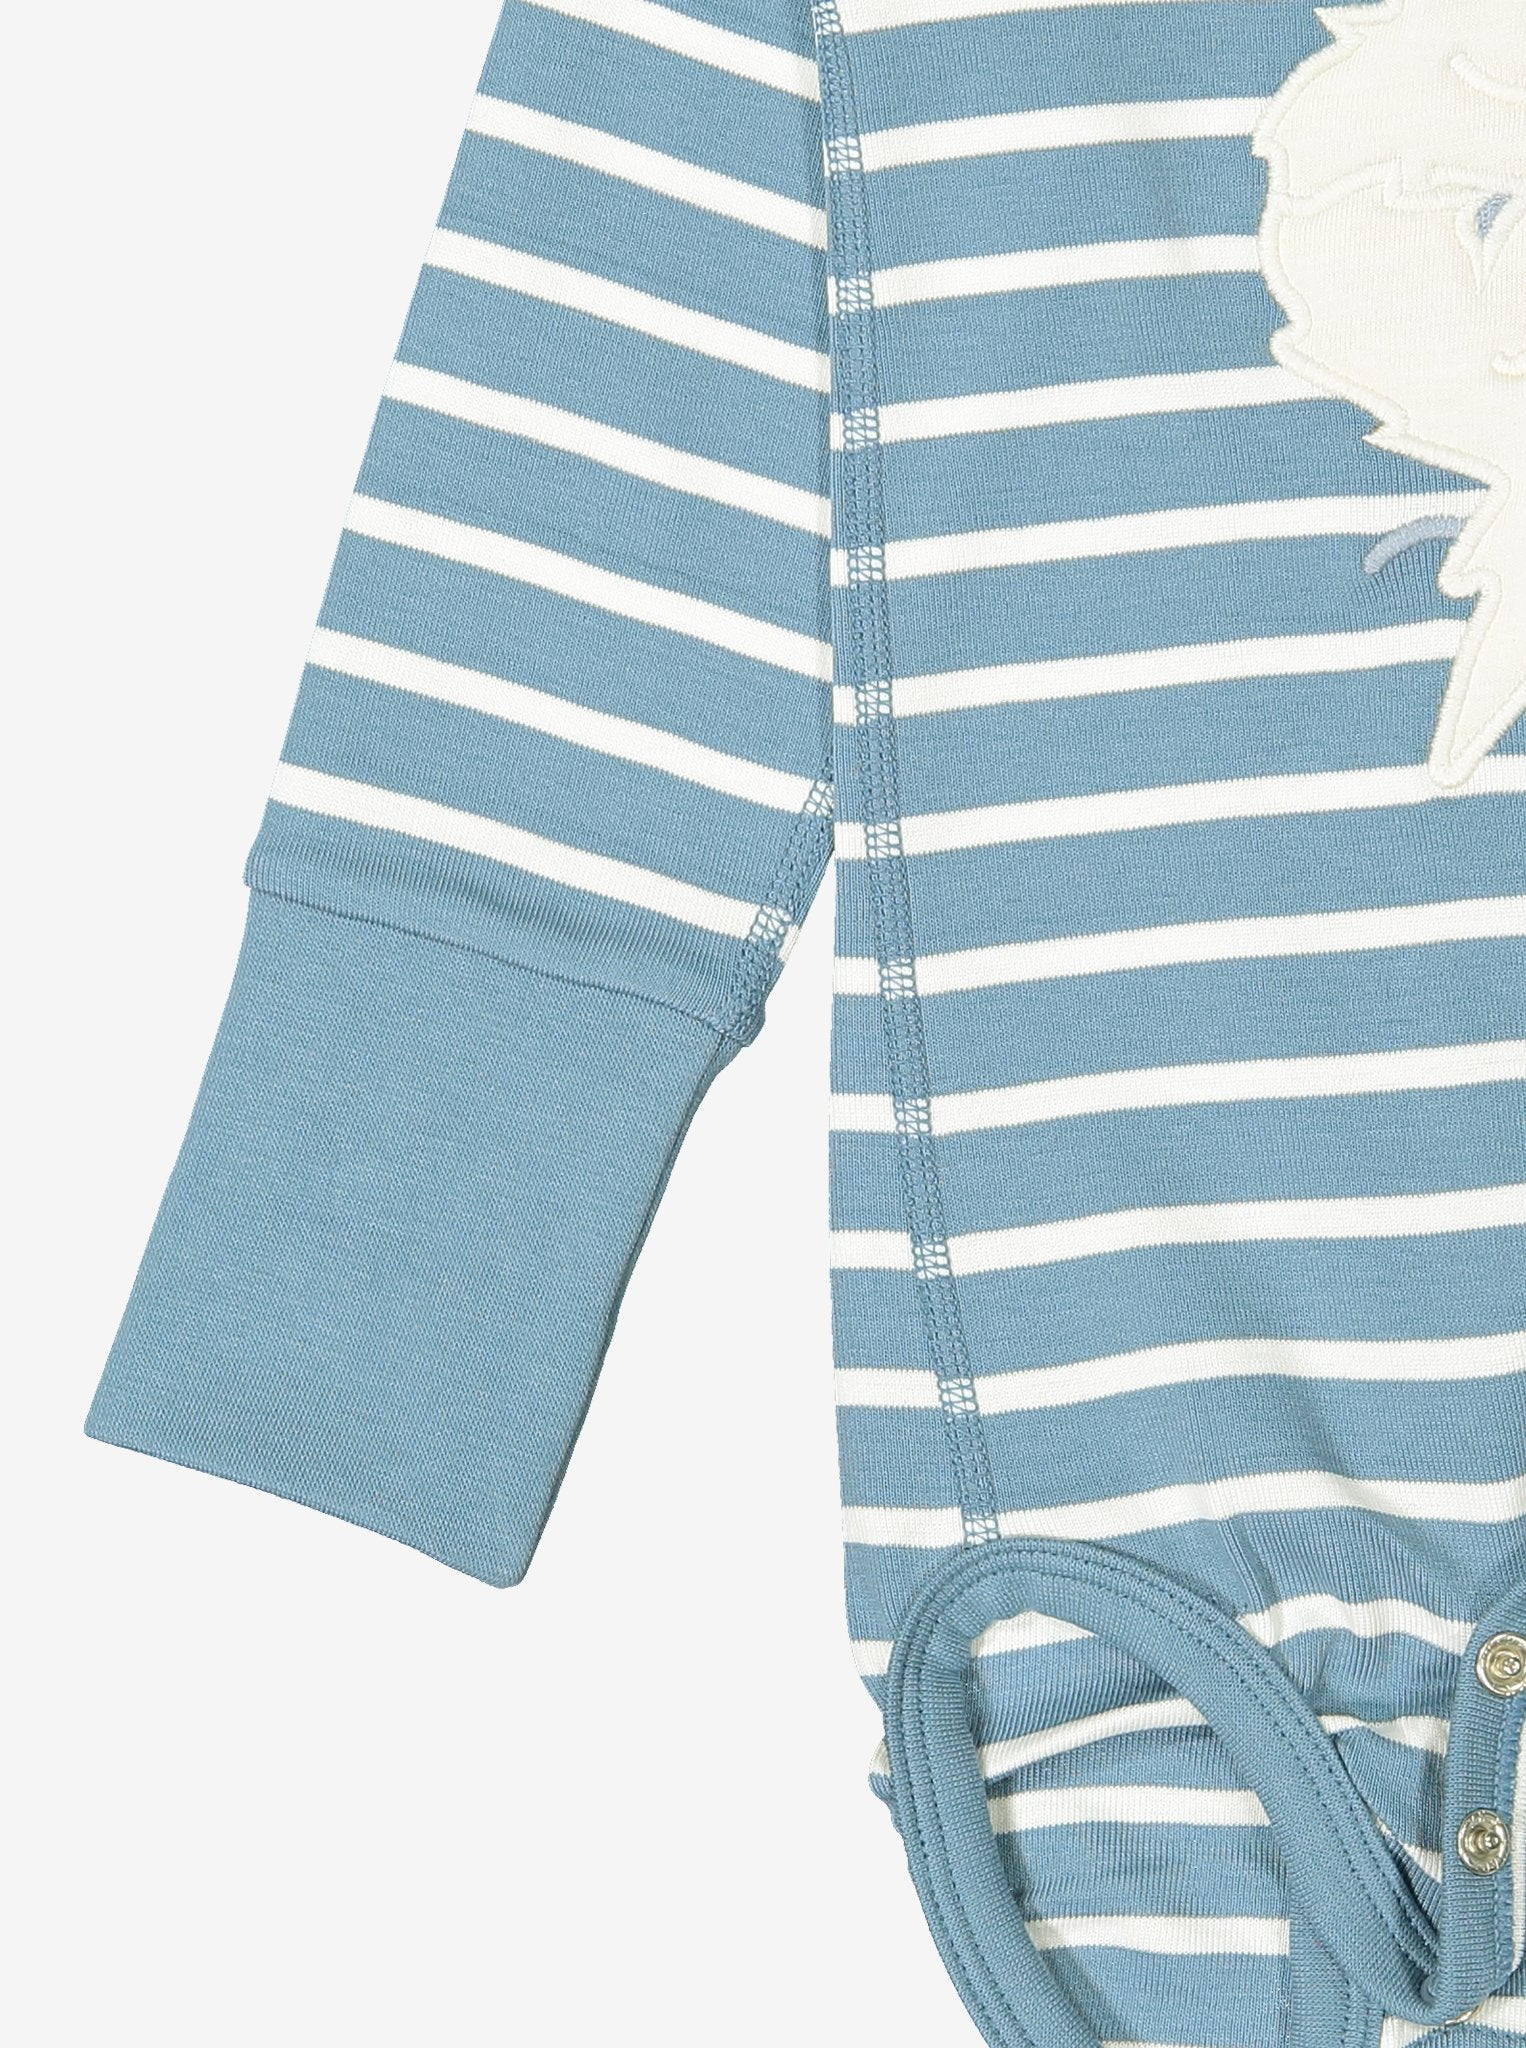 Blue and white striped babygrow showing close of of unique fold-over cuffs giving lots of growing room